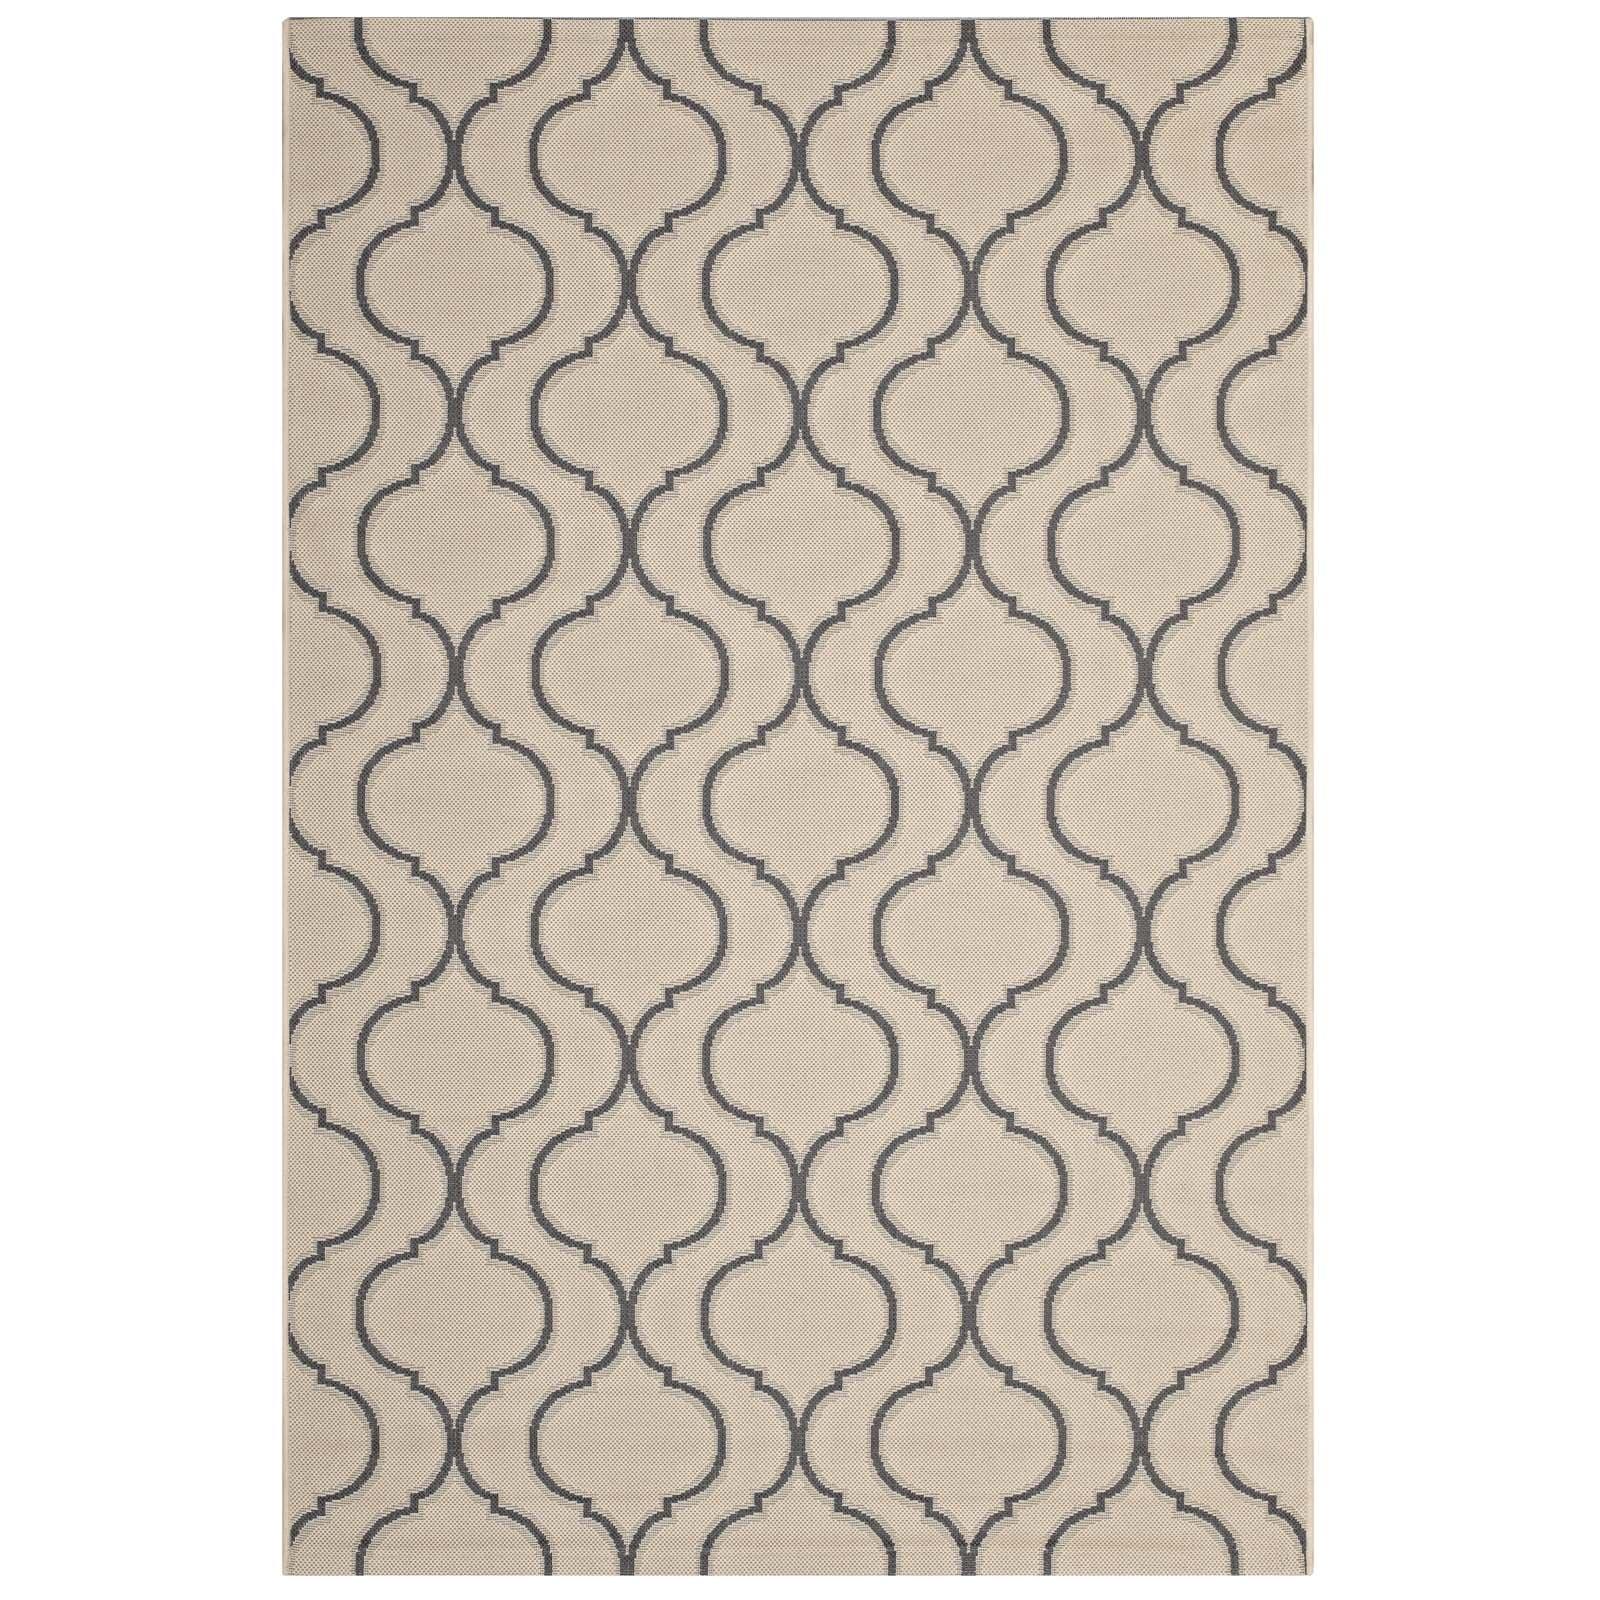 Modway Rugs On Sale R 1136a 810 Linza Wave Abstract